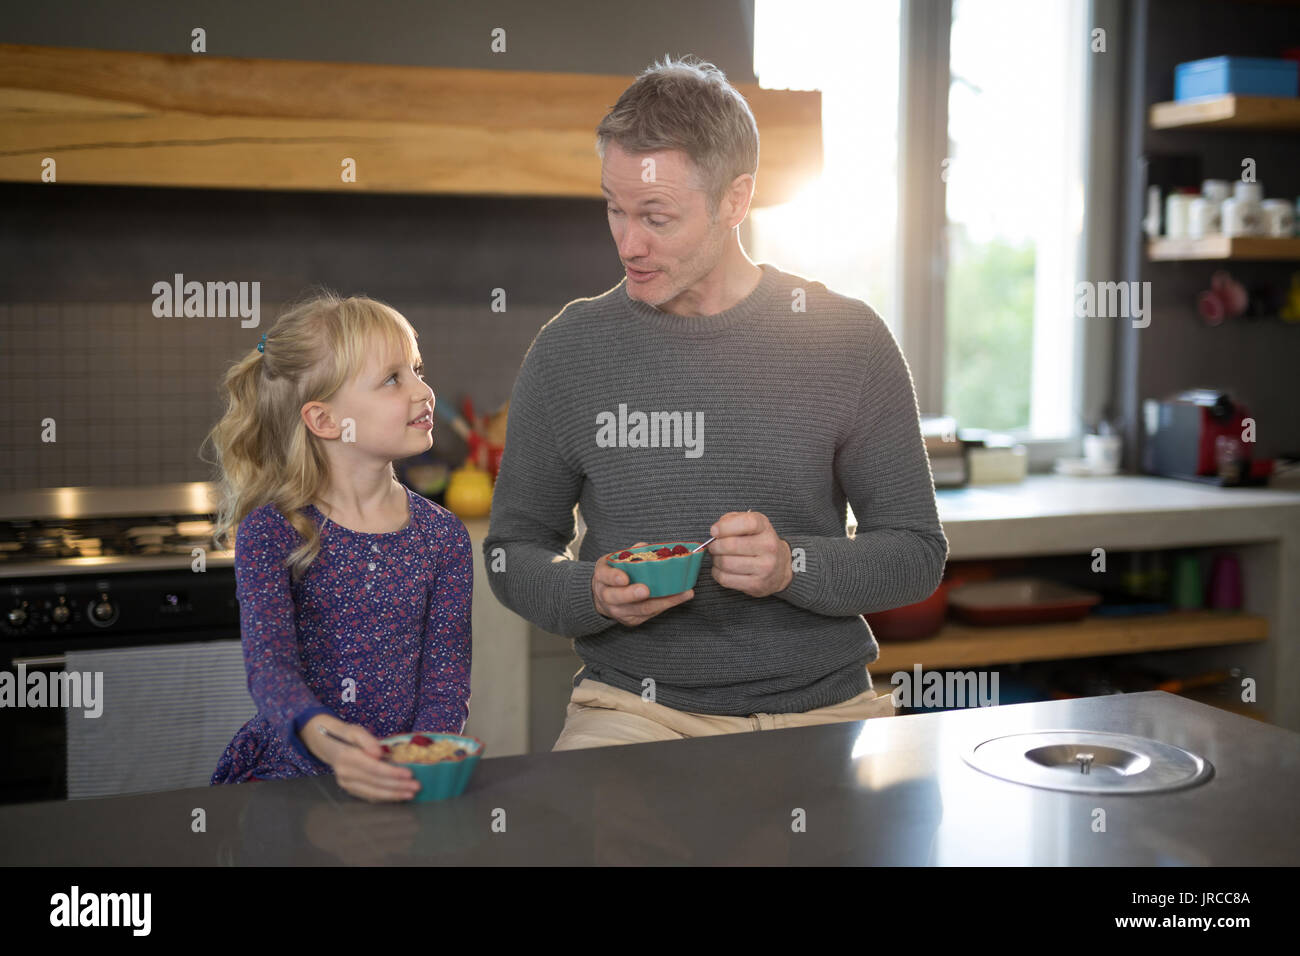 Little girl and father looking at each other while eating fruits from a bowl in the kitchen - Stock Image